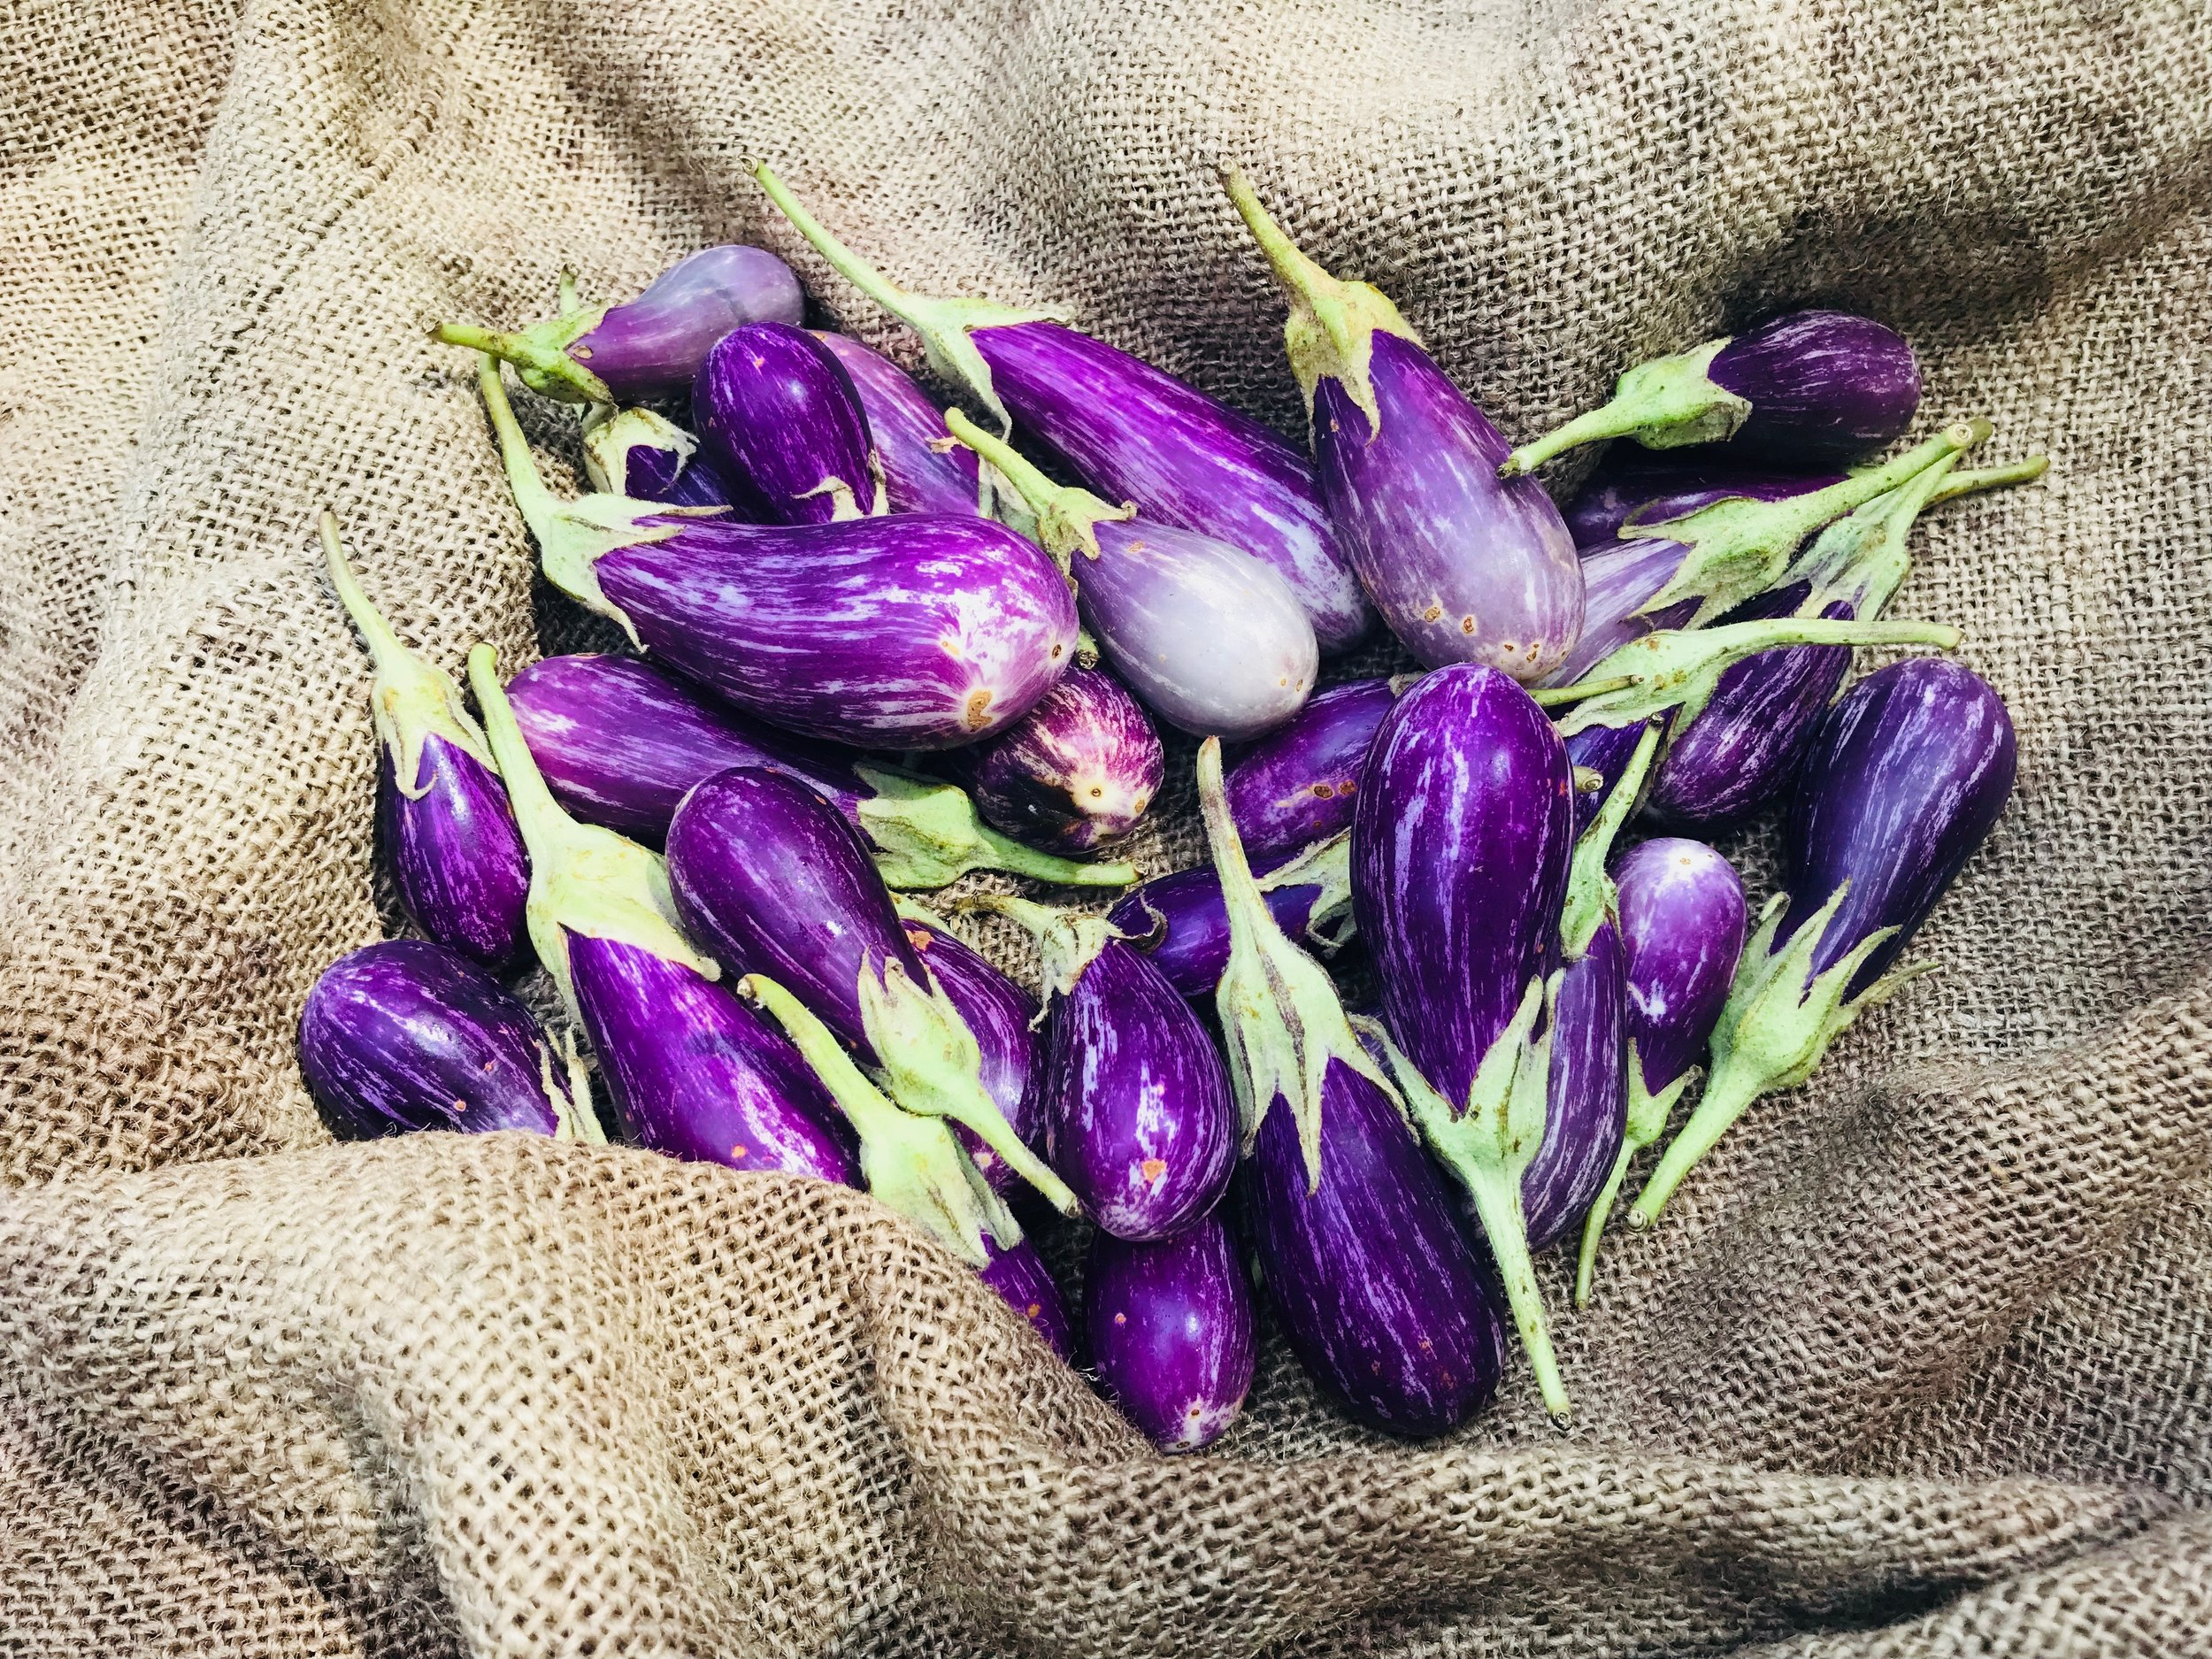 Fairytale Eggplant /  Belle Meadow Farms